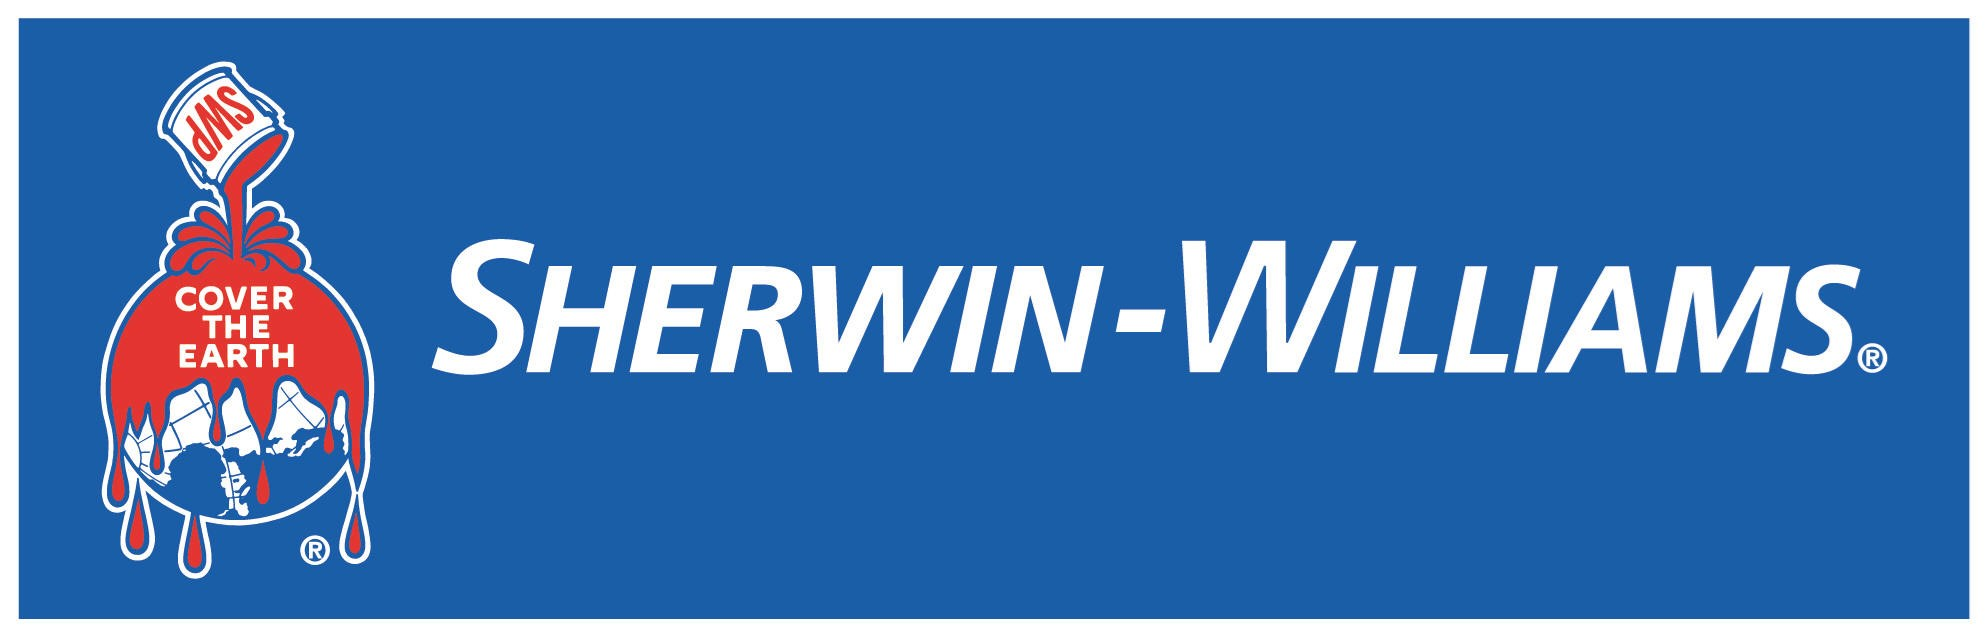 Sherwin-Williams Logo | Class C Components Janitorial MRO Supplier